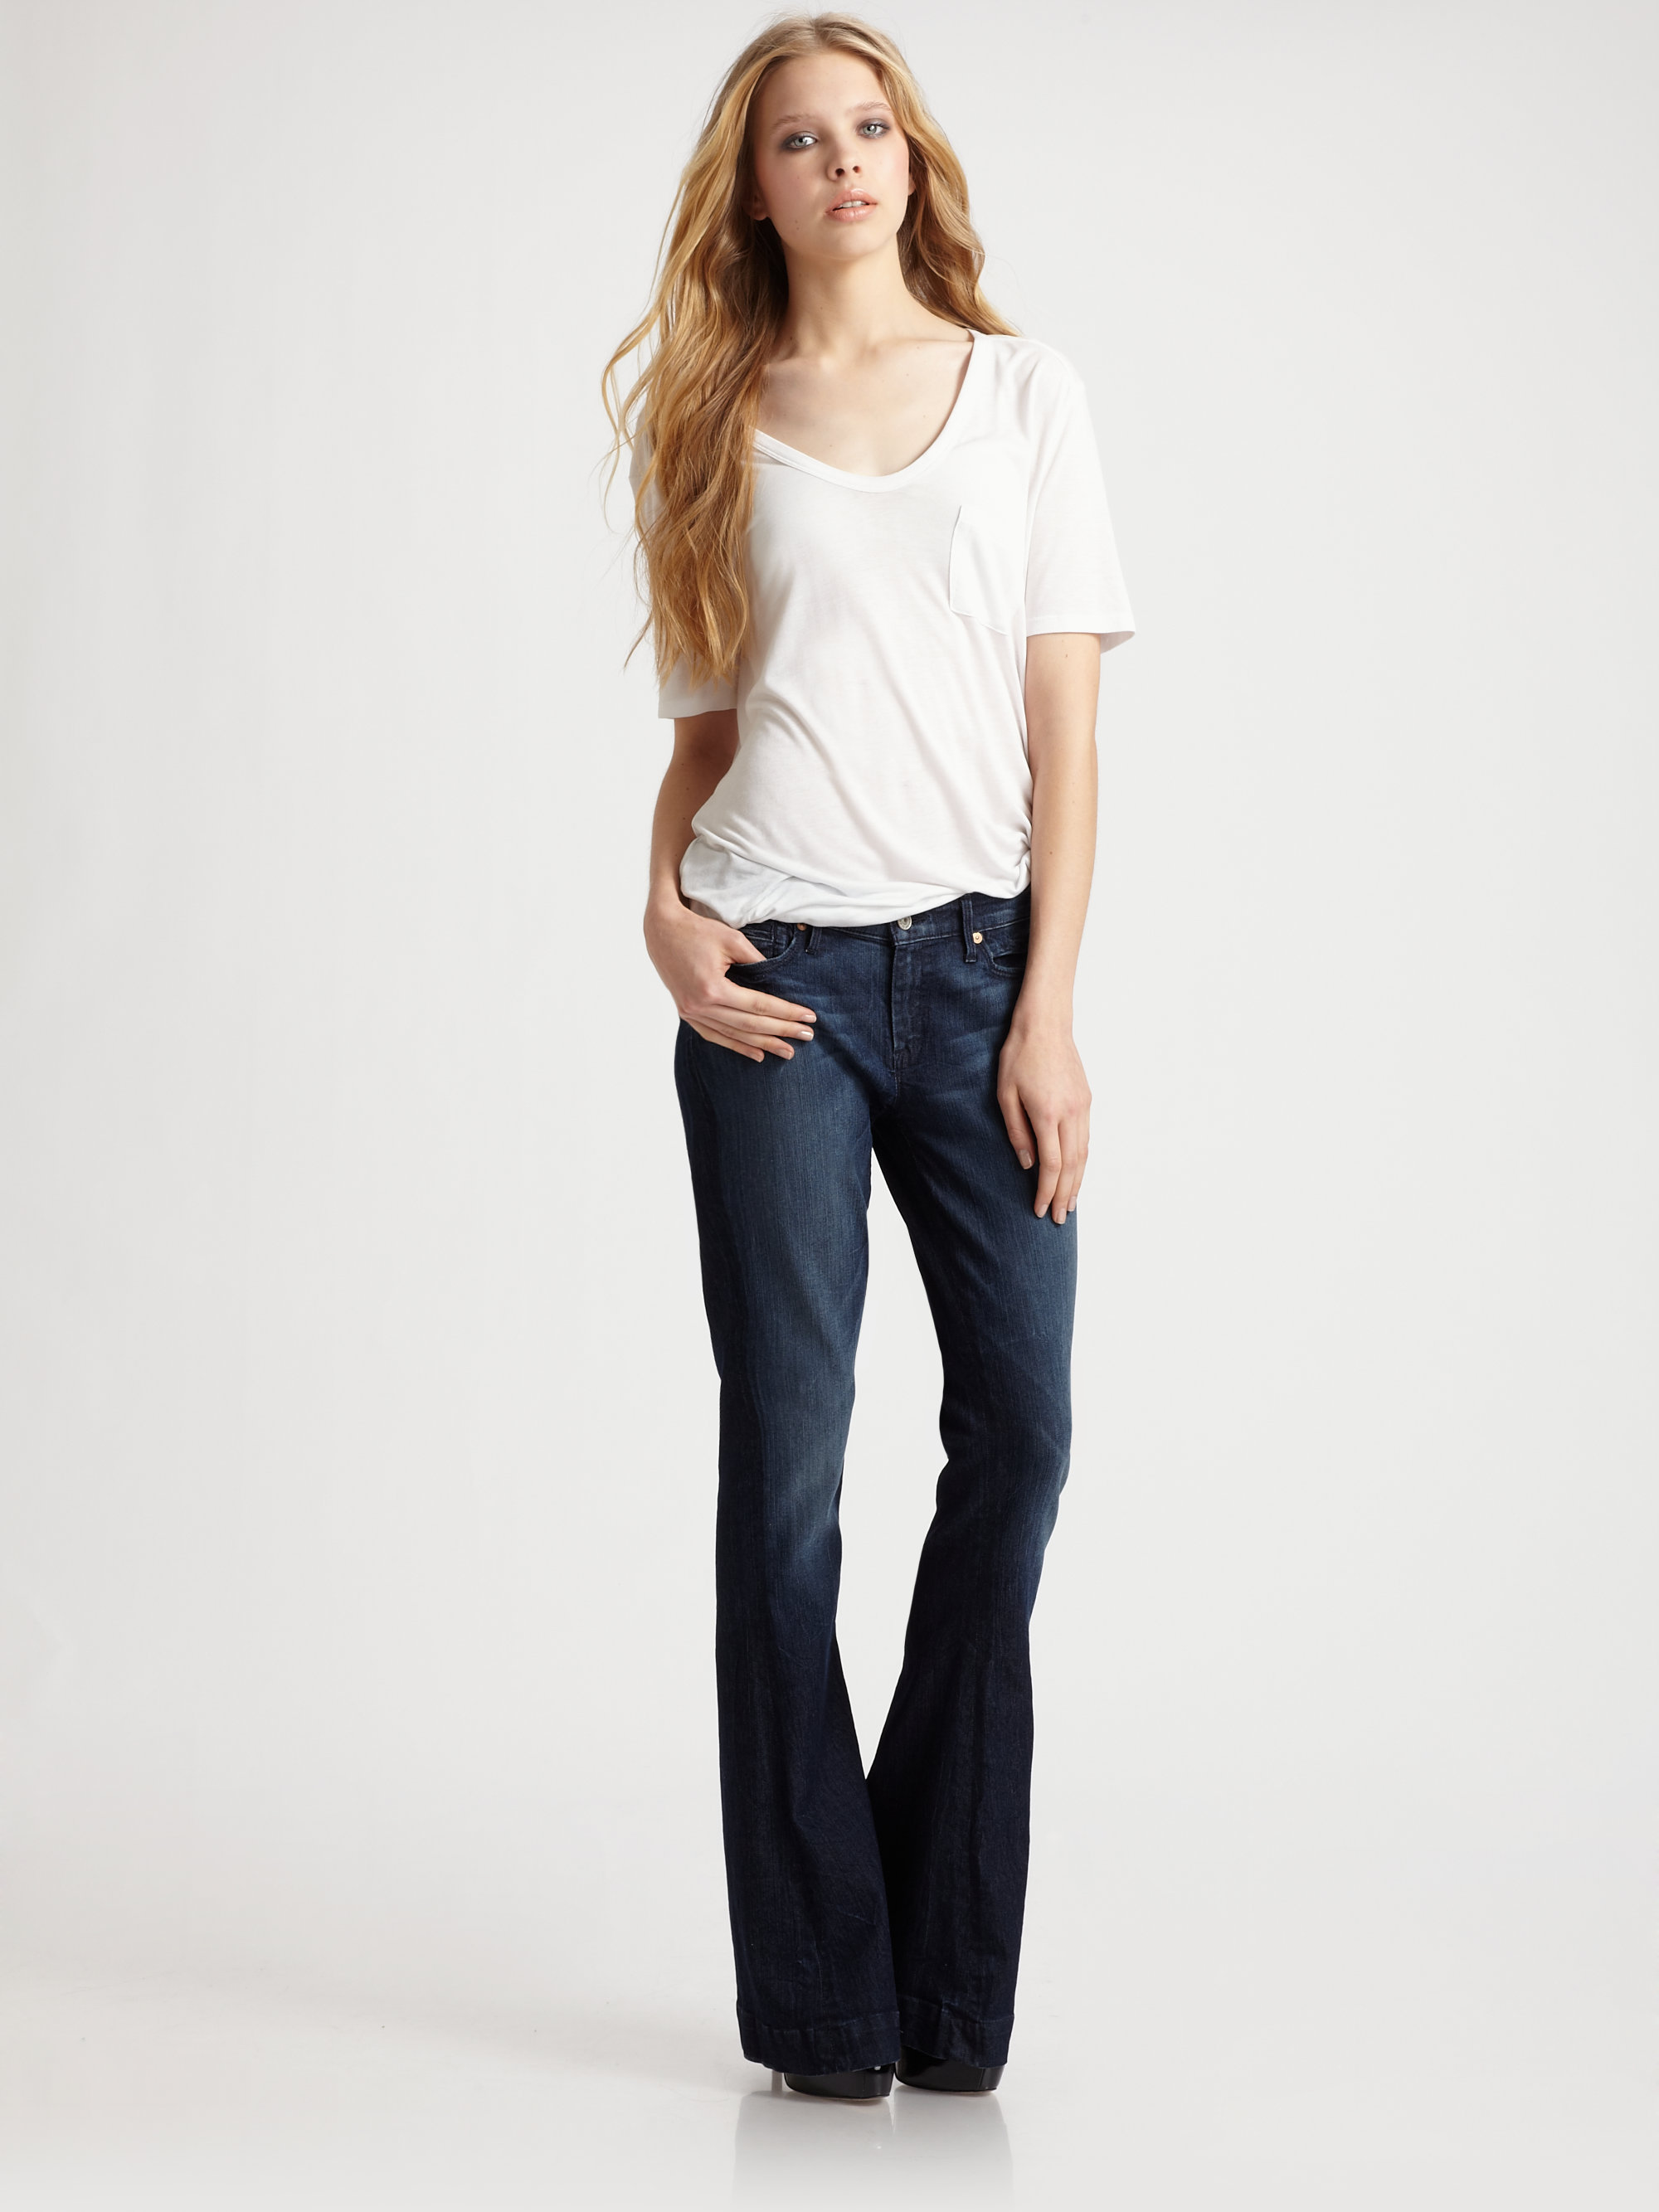 7 For All Mankind Fashion & Outfits | Celebrity Style Guide